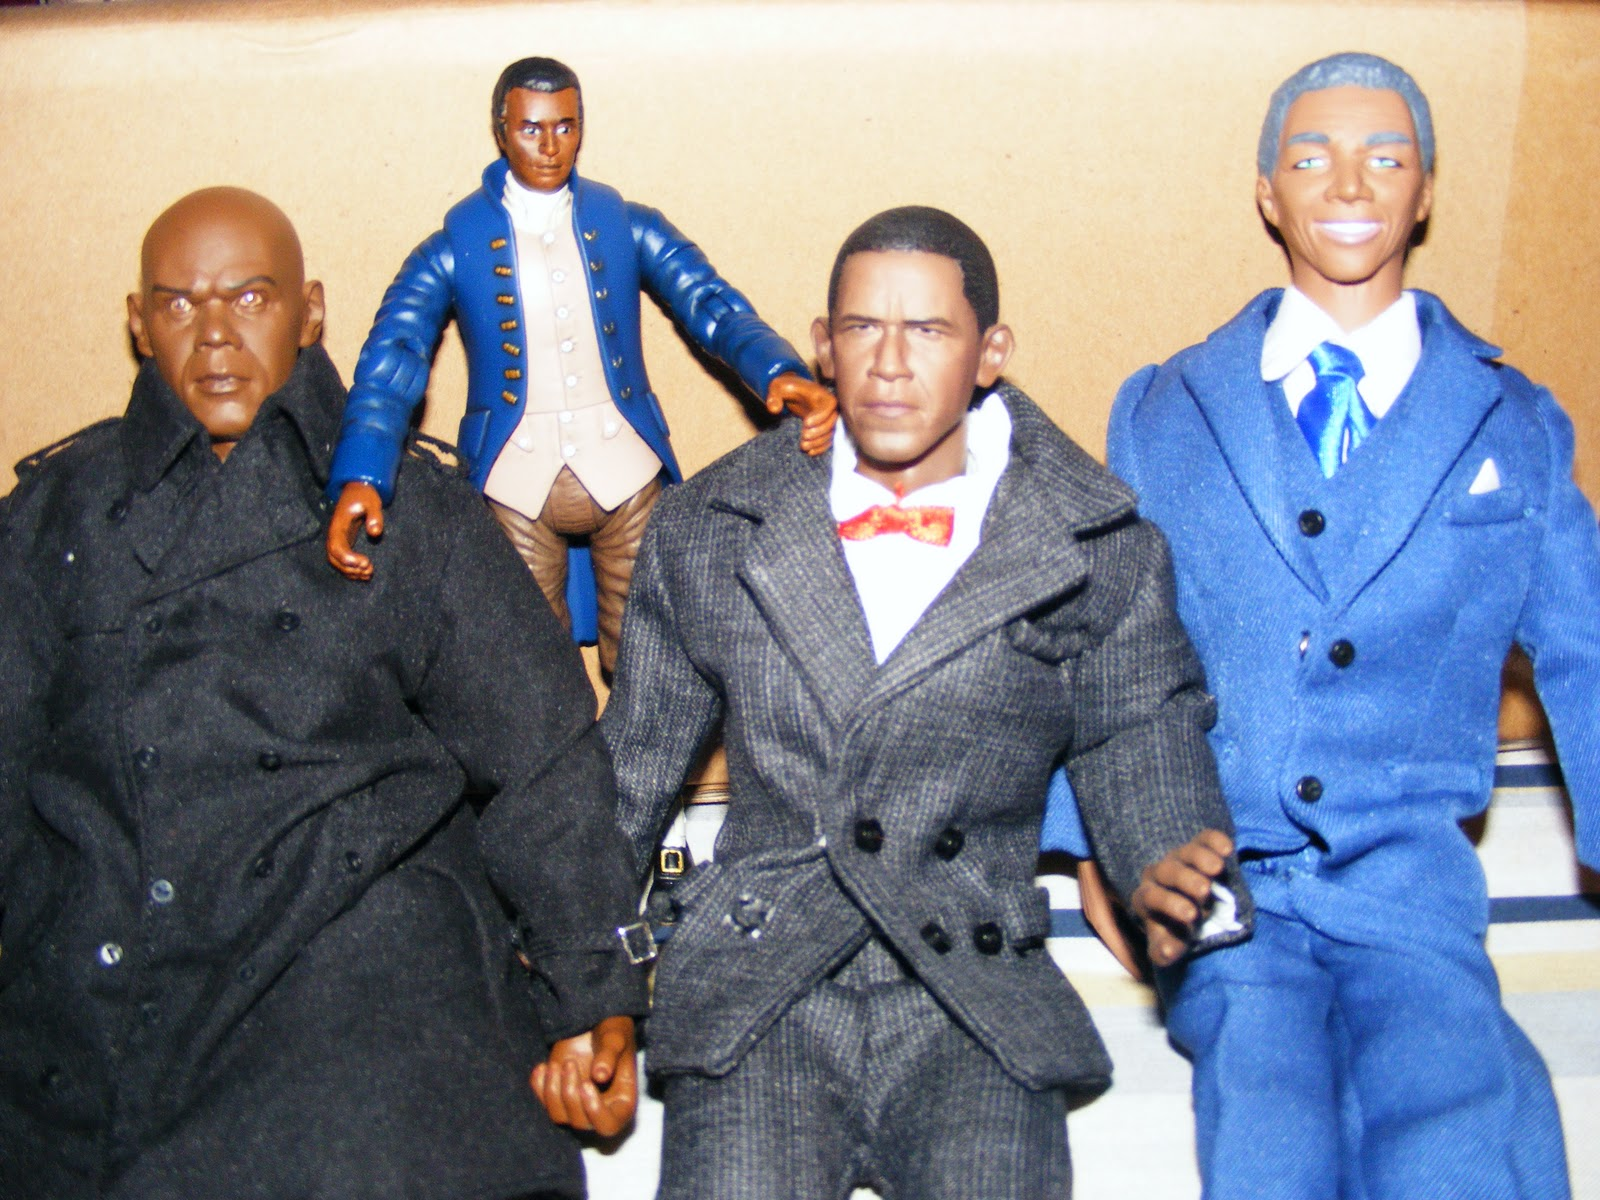 The action figures that have a connection to Martin Luther King's life.